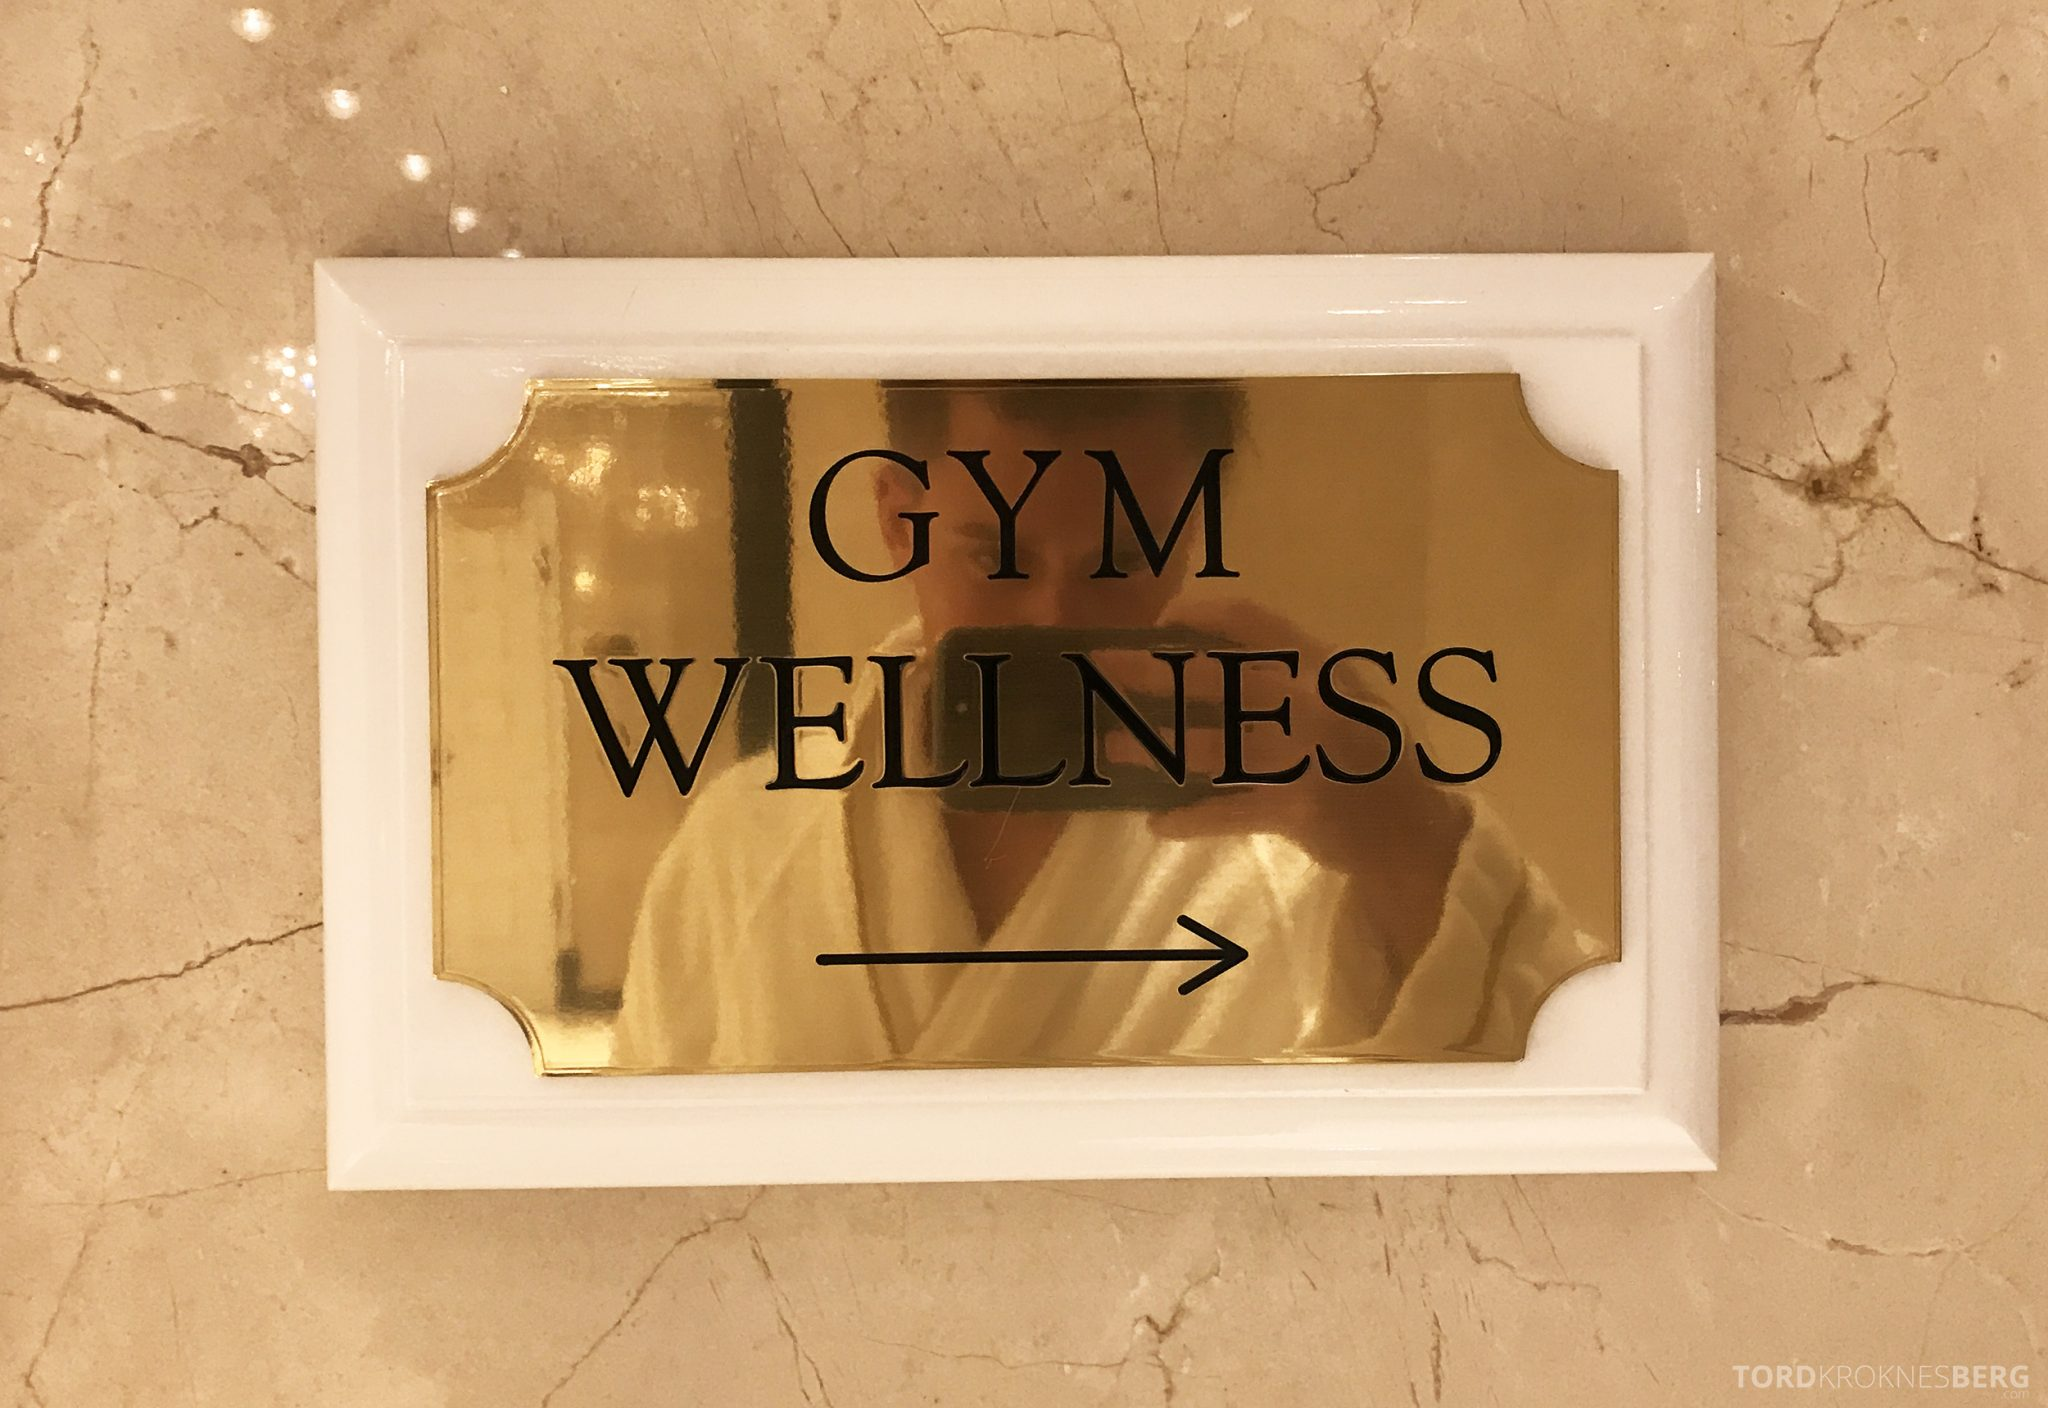 The Ritz-Carlton Berlin gym/wellness